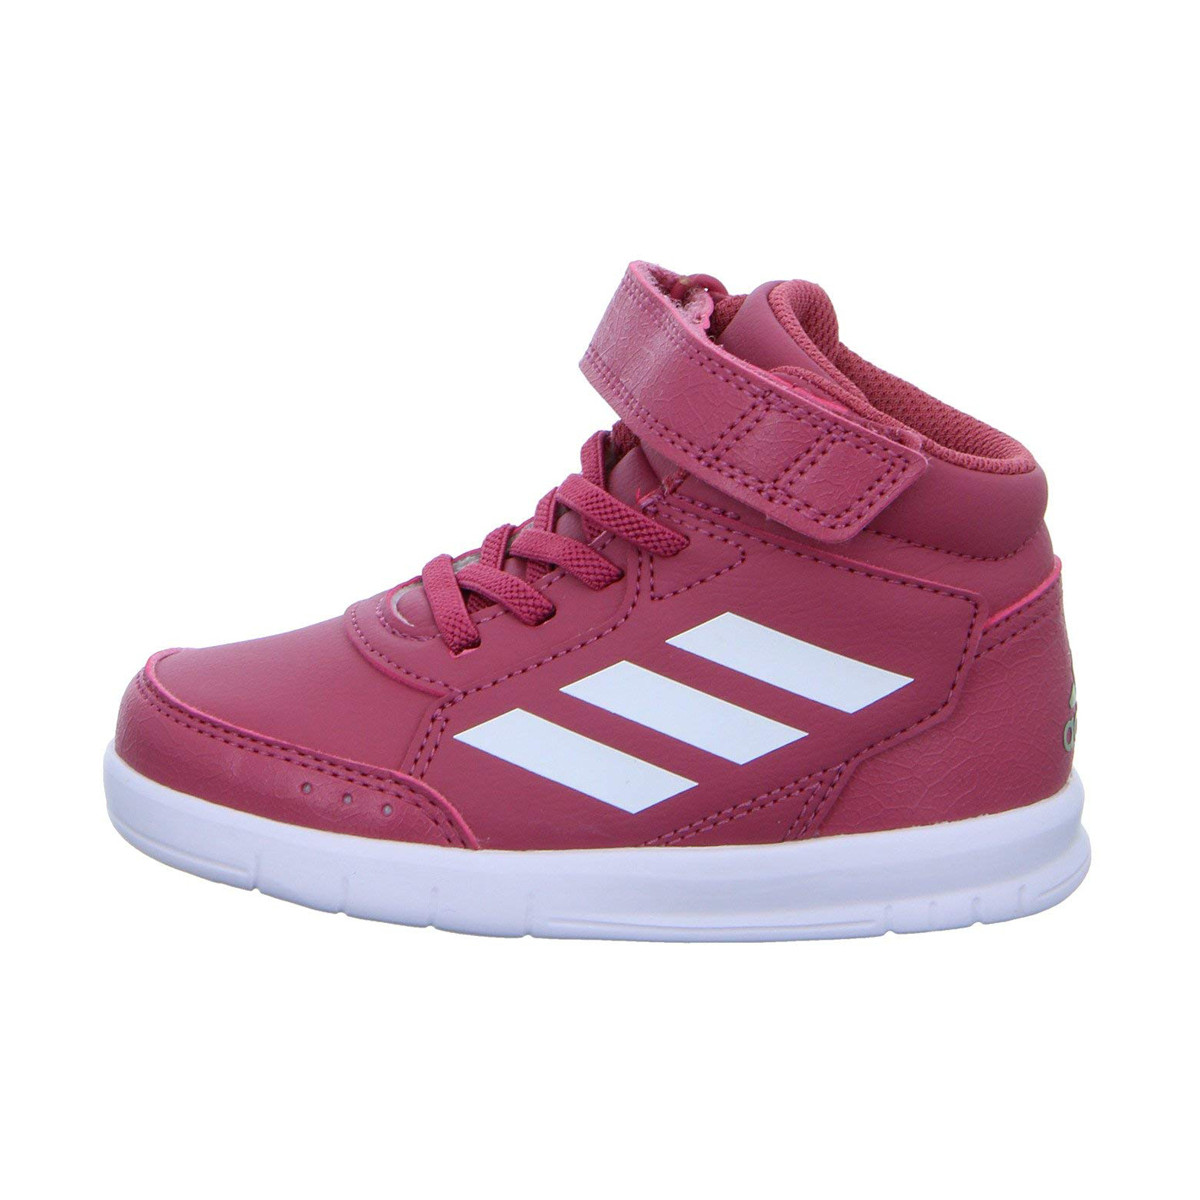 adidas shoes toddler